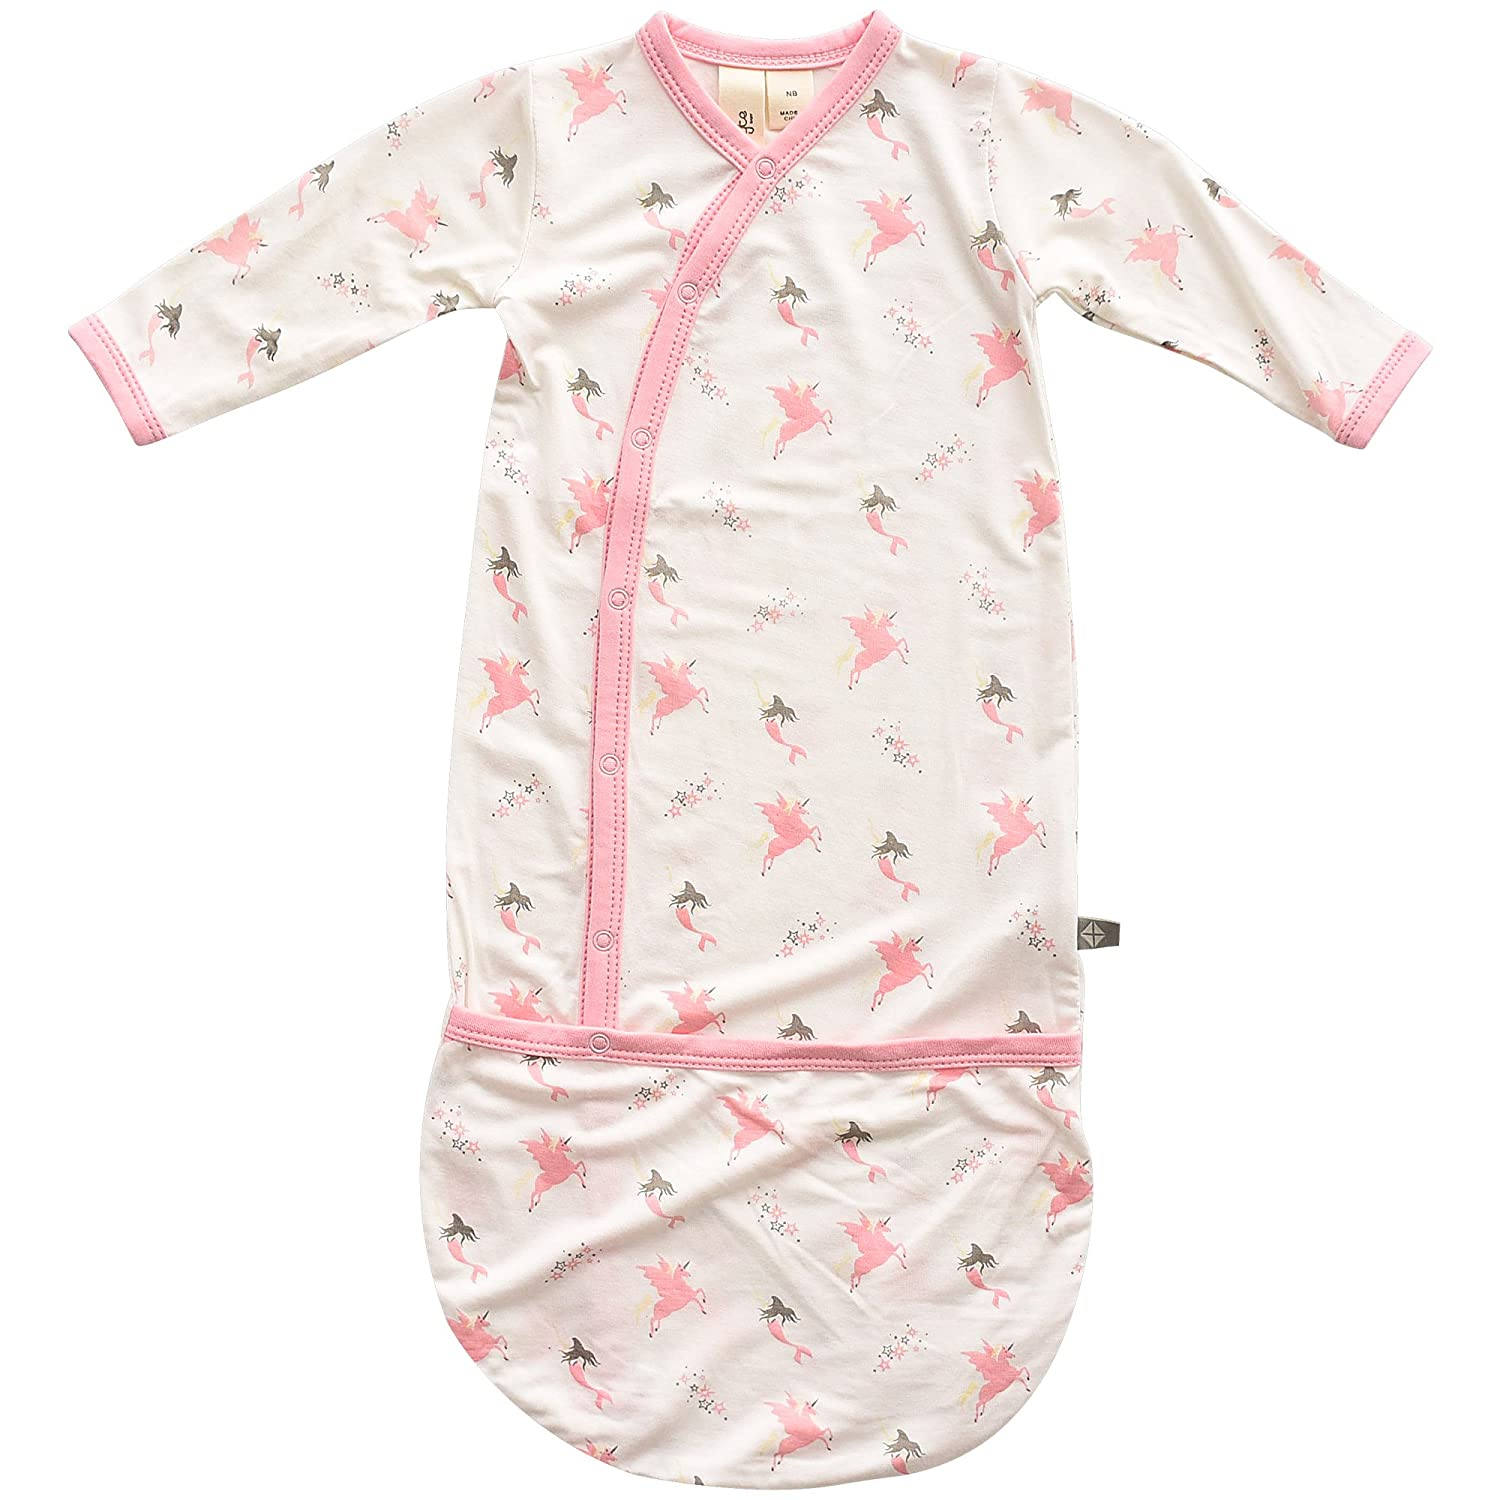 0-6 Months KYTE BABY Bundlers Baby Sleeper Gowns Made of Soft Organic Bamboo Rayon Material Printed Patterns